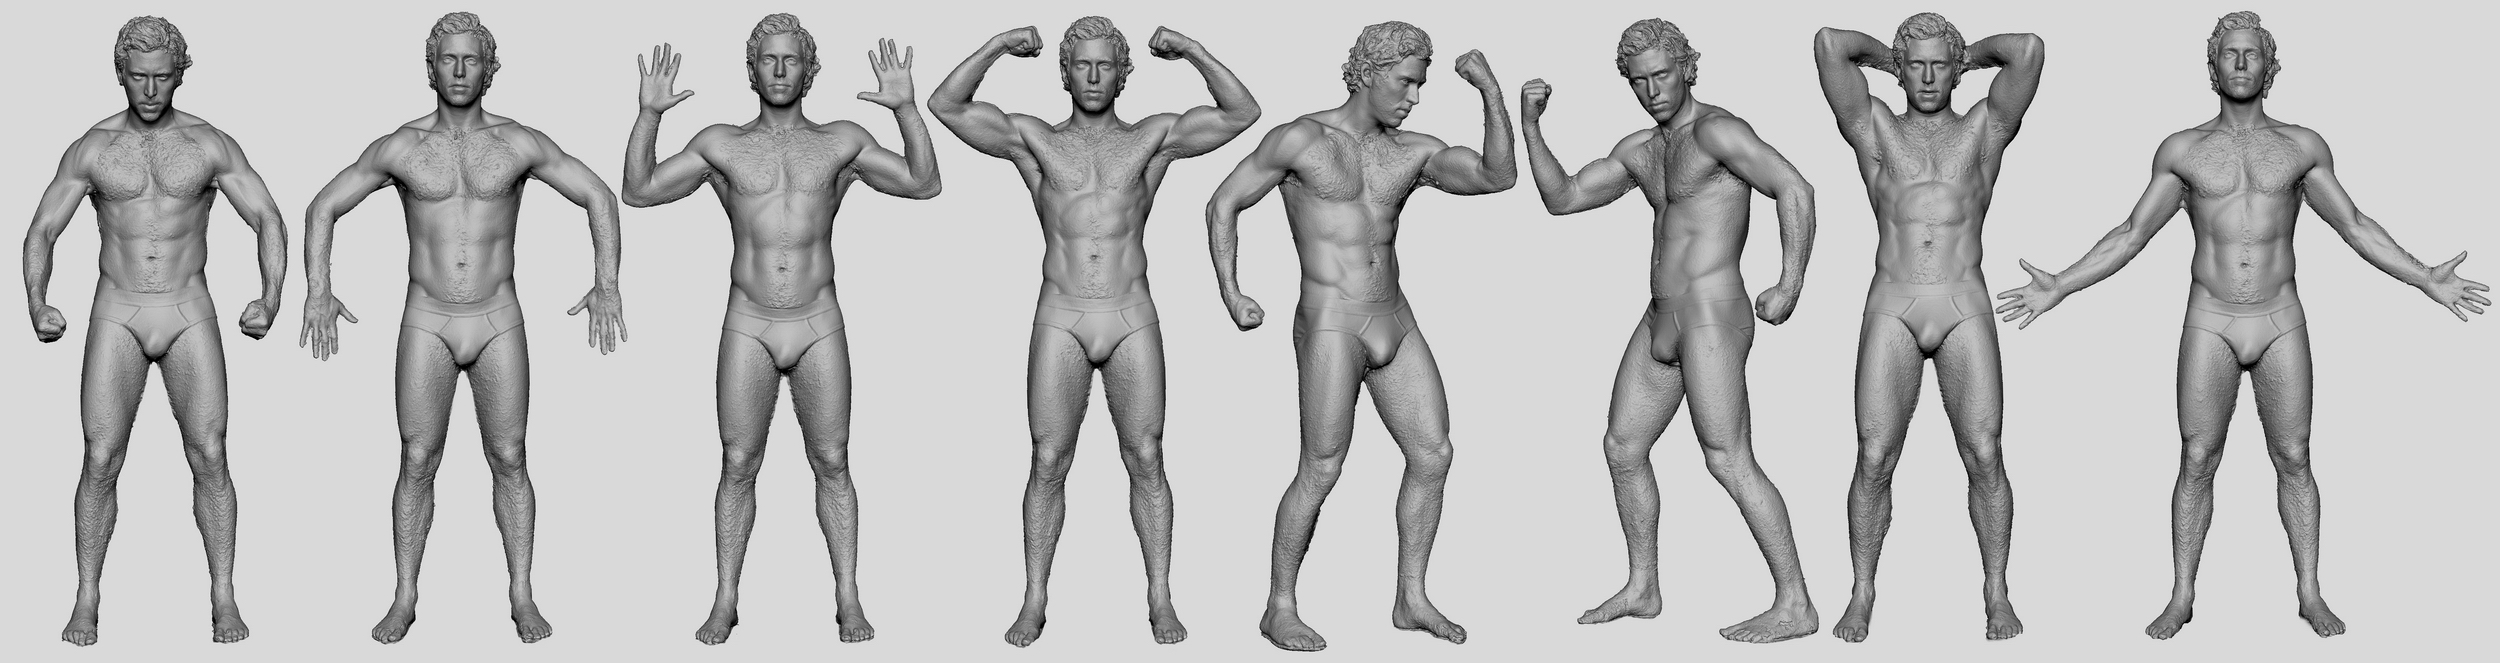 3d Body Scans Soon To Be Released Infinite Realities